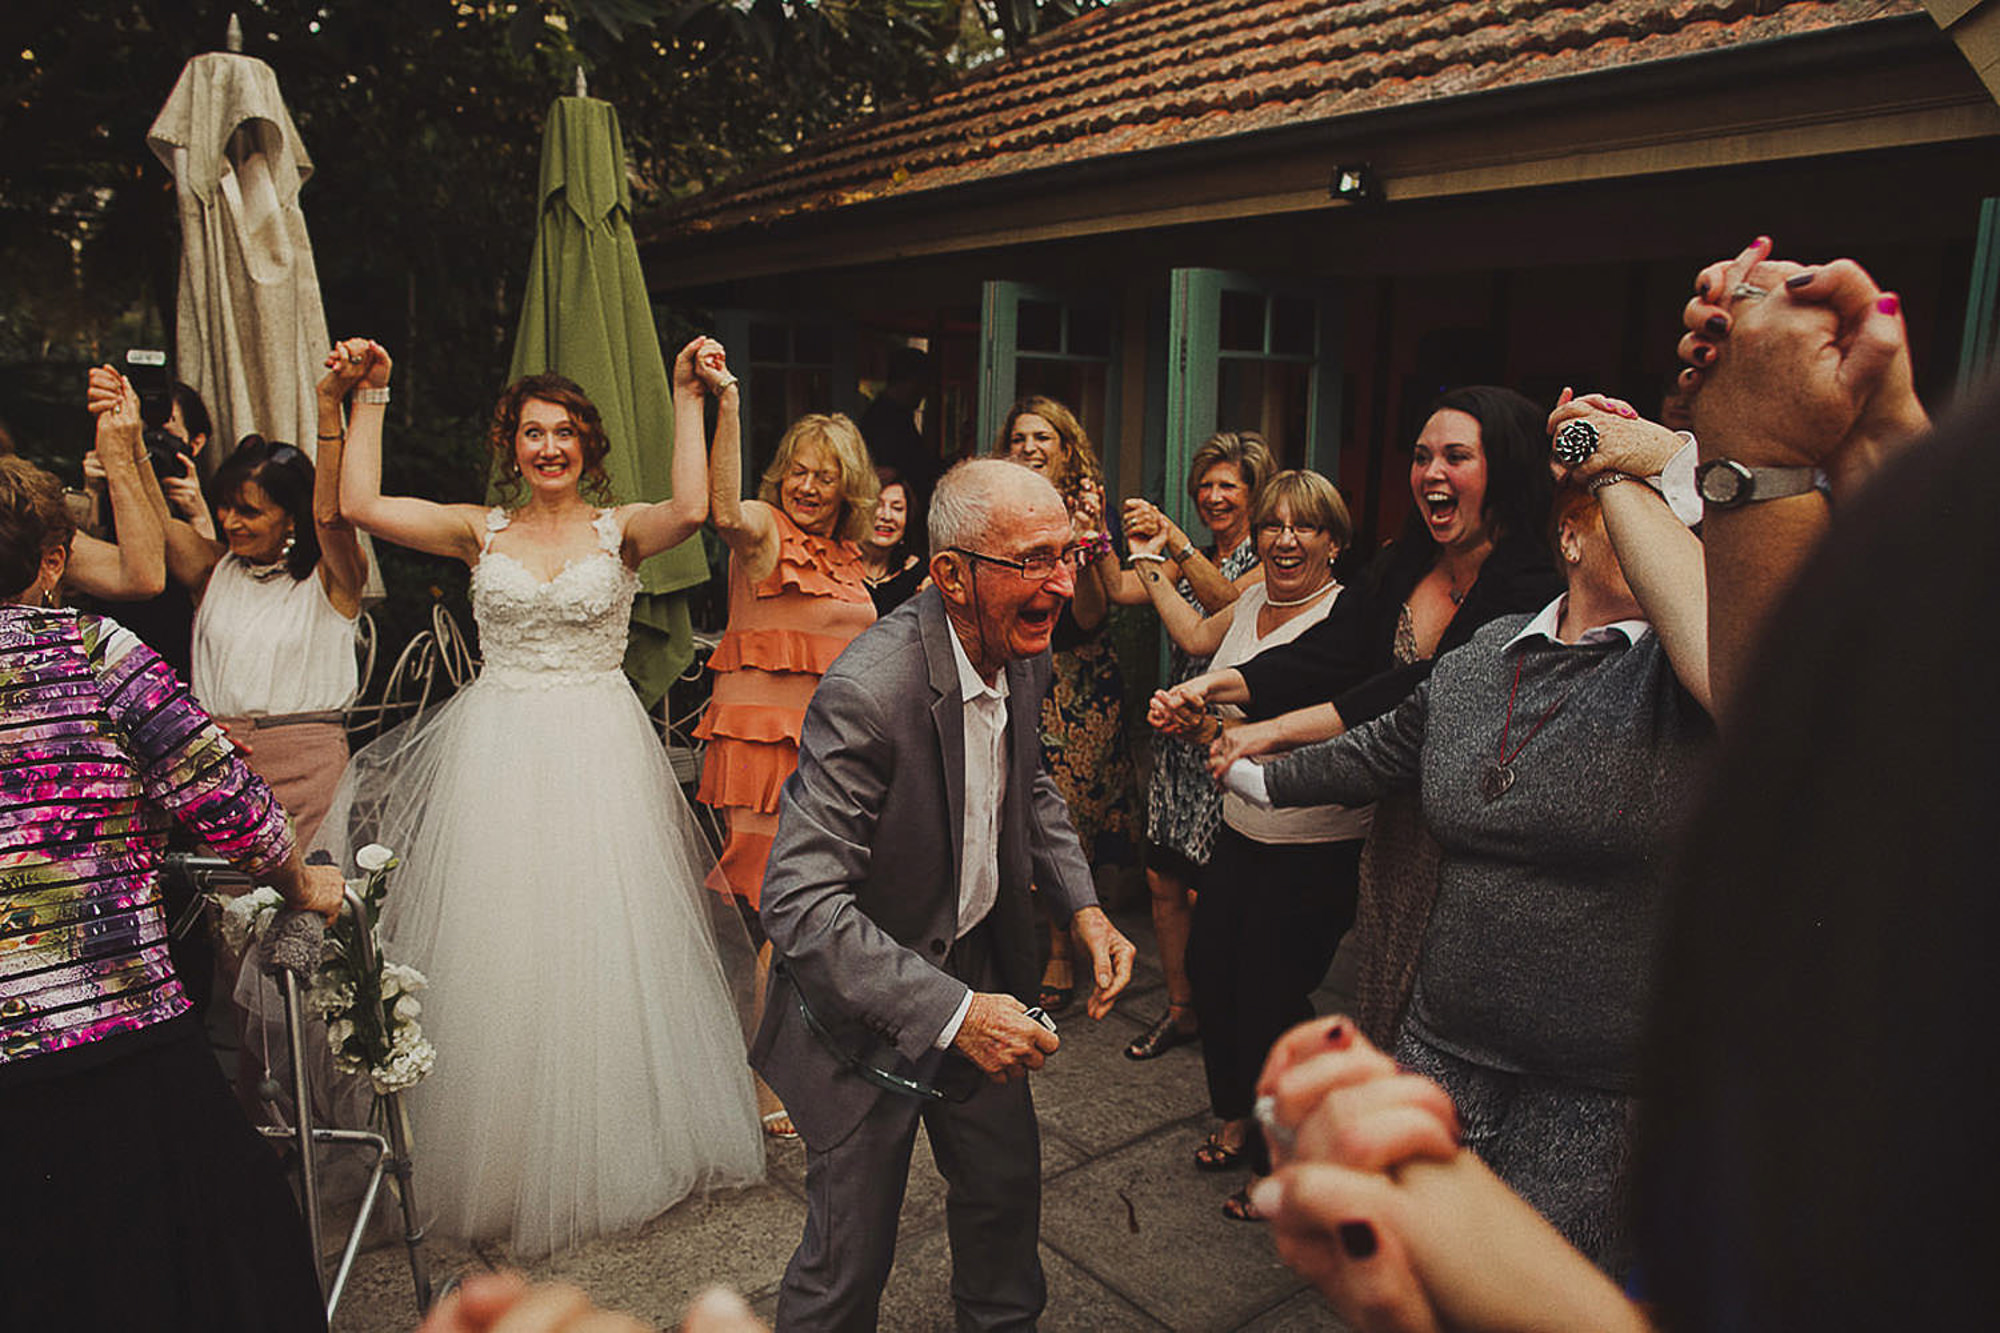 Grandpa dancing with bride in background - photo by Dan O'Day